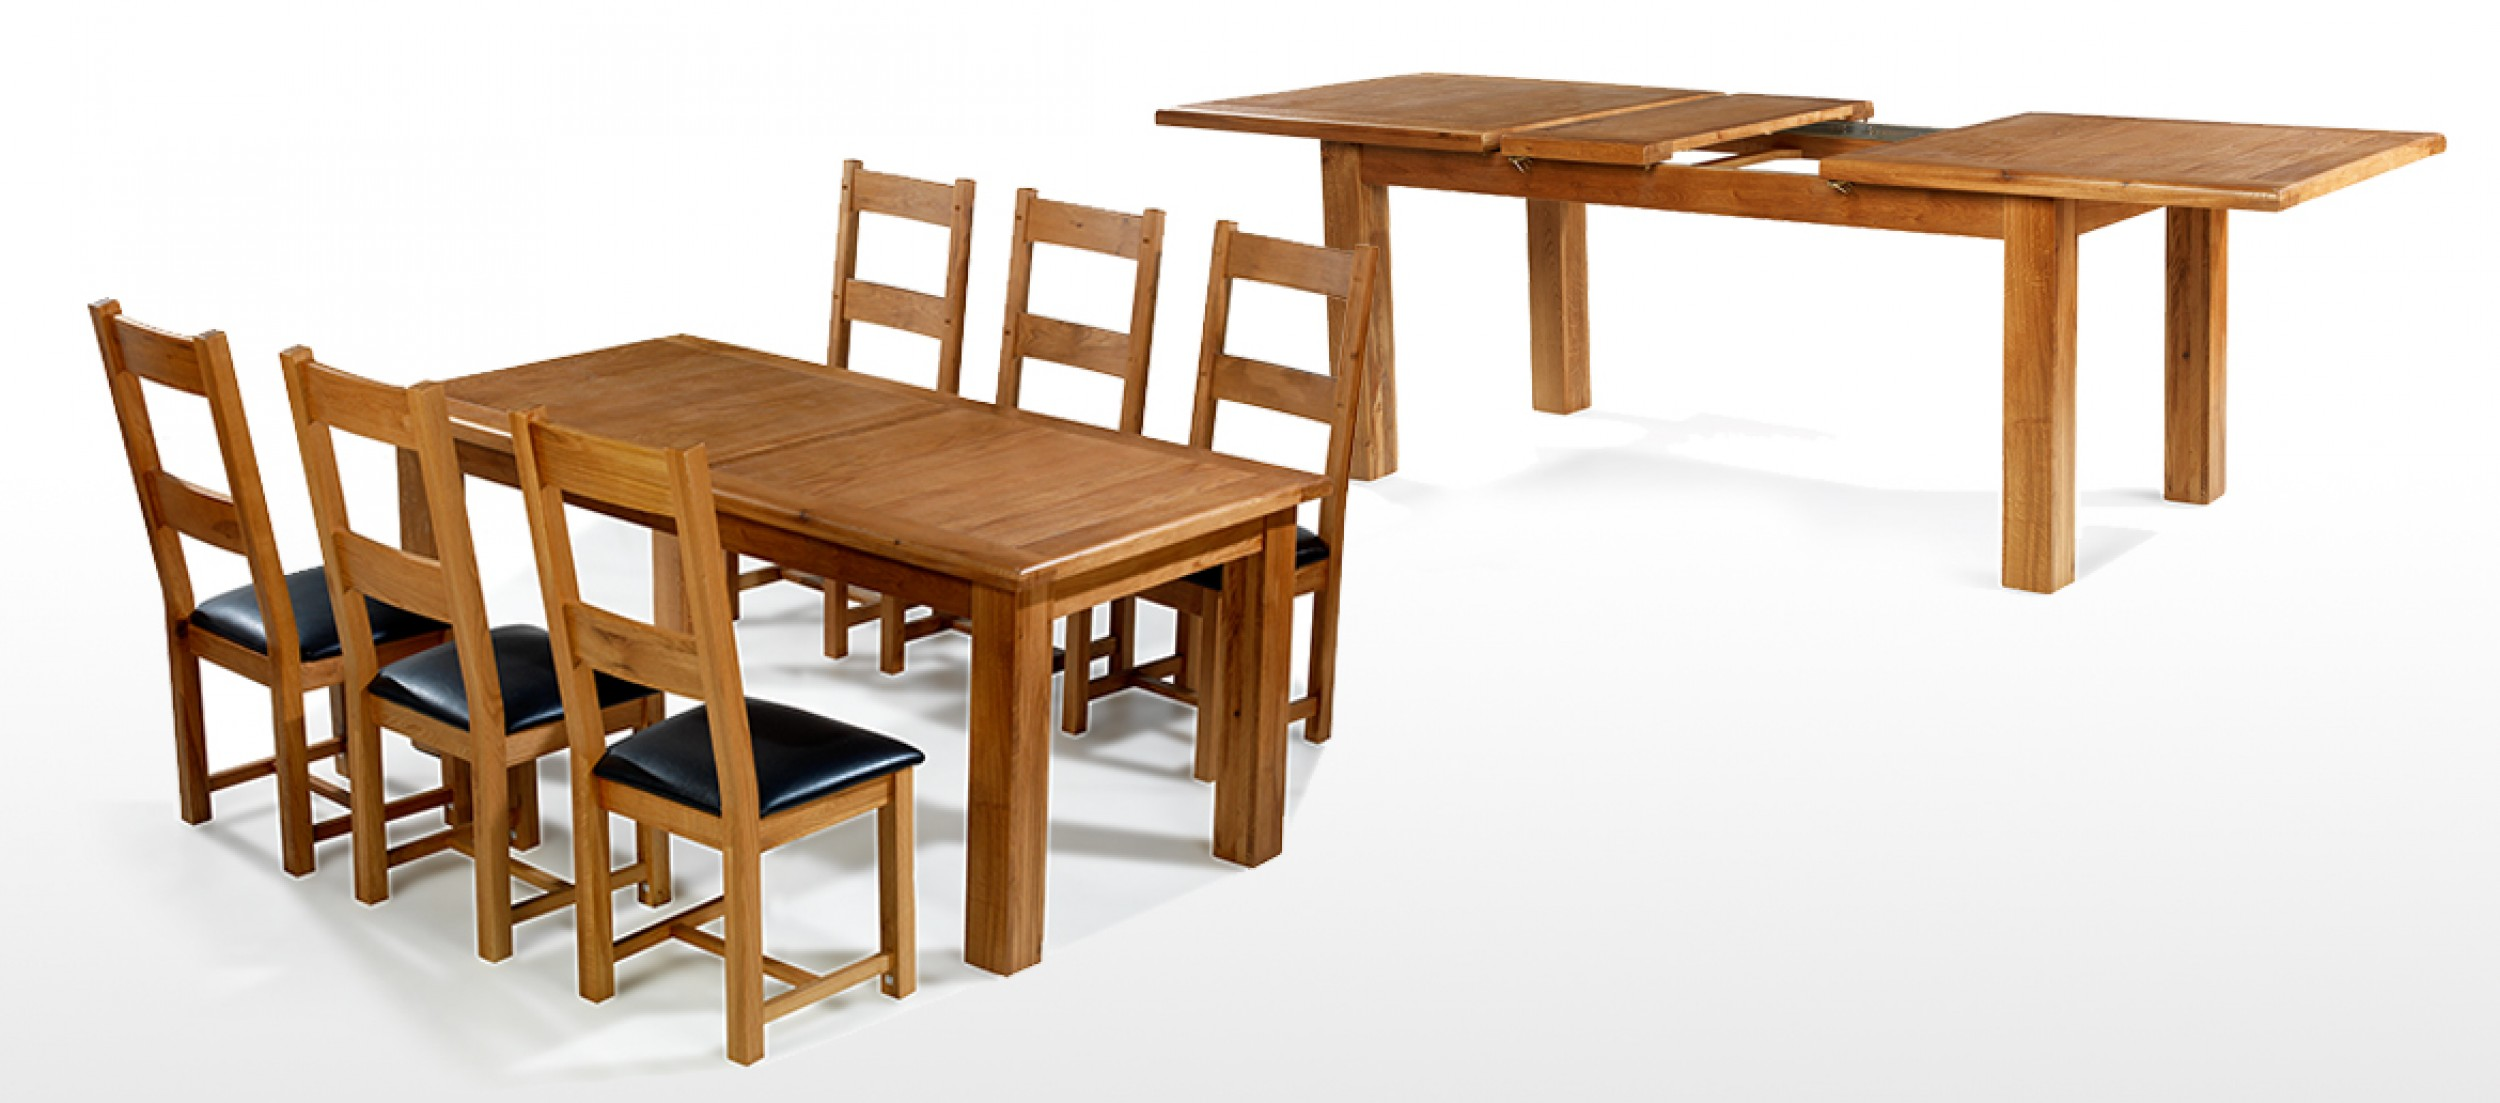 Extended Dining Table And Chairs Images Dining Table Ideas : barham oak large extending dining table tp 24 set 6 special from sorahana.info size 2500 x 1103 jpeg 264kB